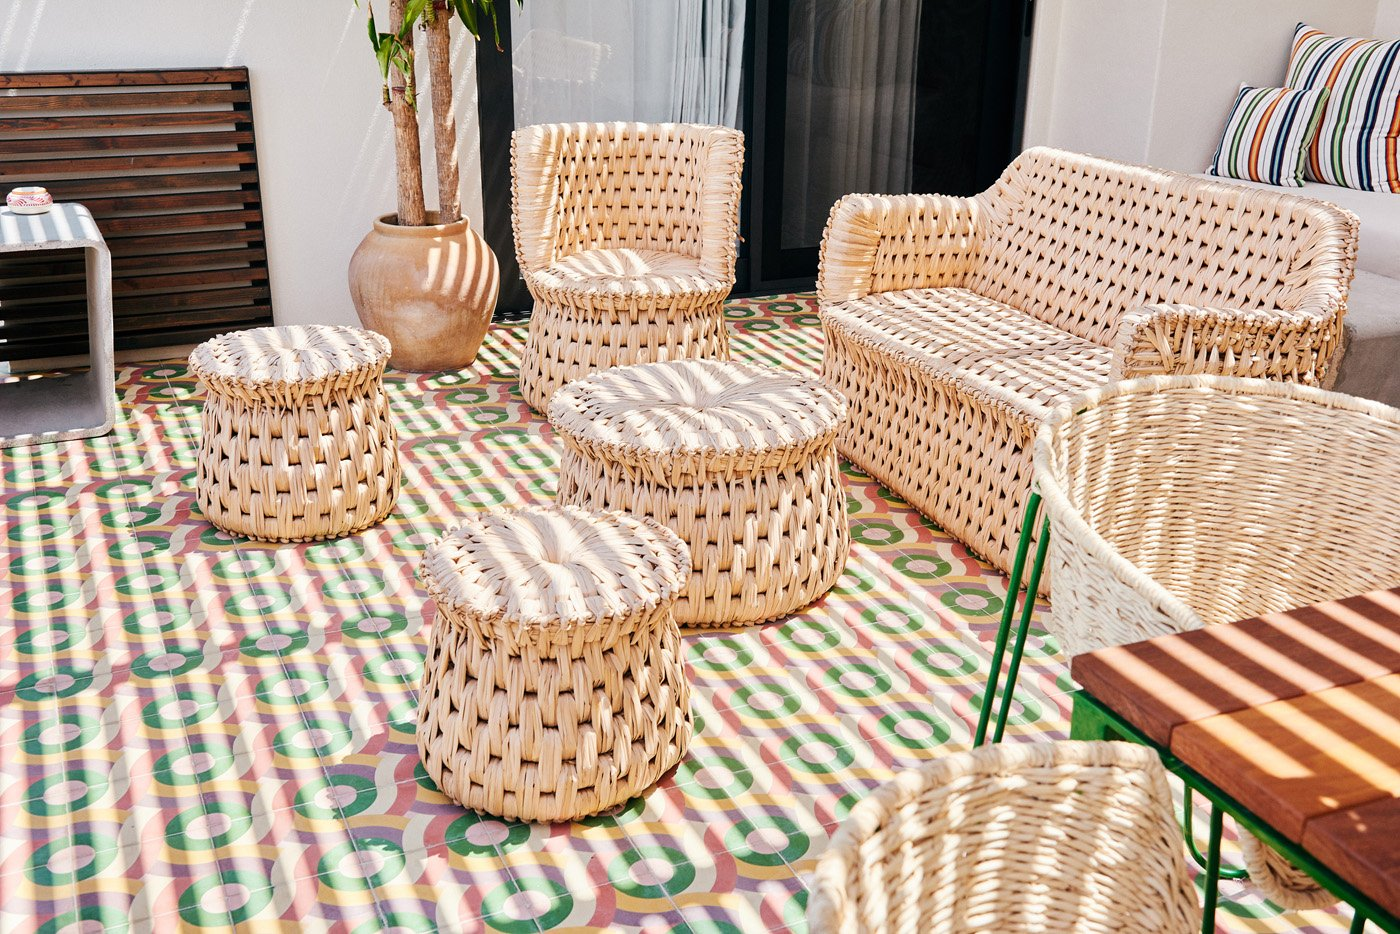 11 Steps to Resort Decor: How to Bring Vacation Vibes Home When Getting inspiration from Hotel San Christobal. 11 Steps to Resort Decor: How to Bring Vacation Vibes Home When You Can't Get Away #resortdecor #rattan #tropicalrug